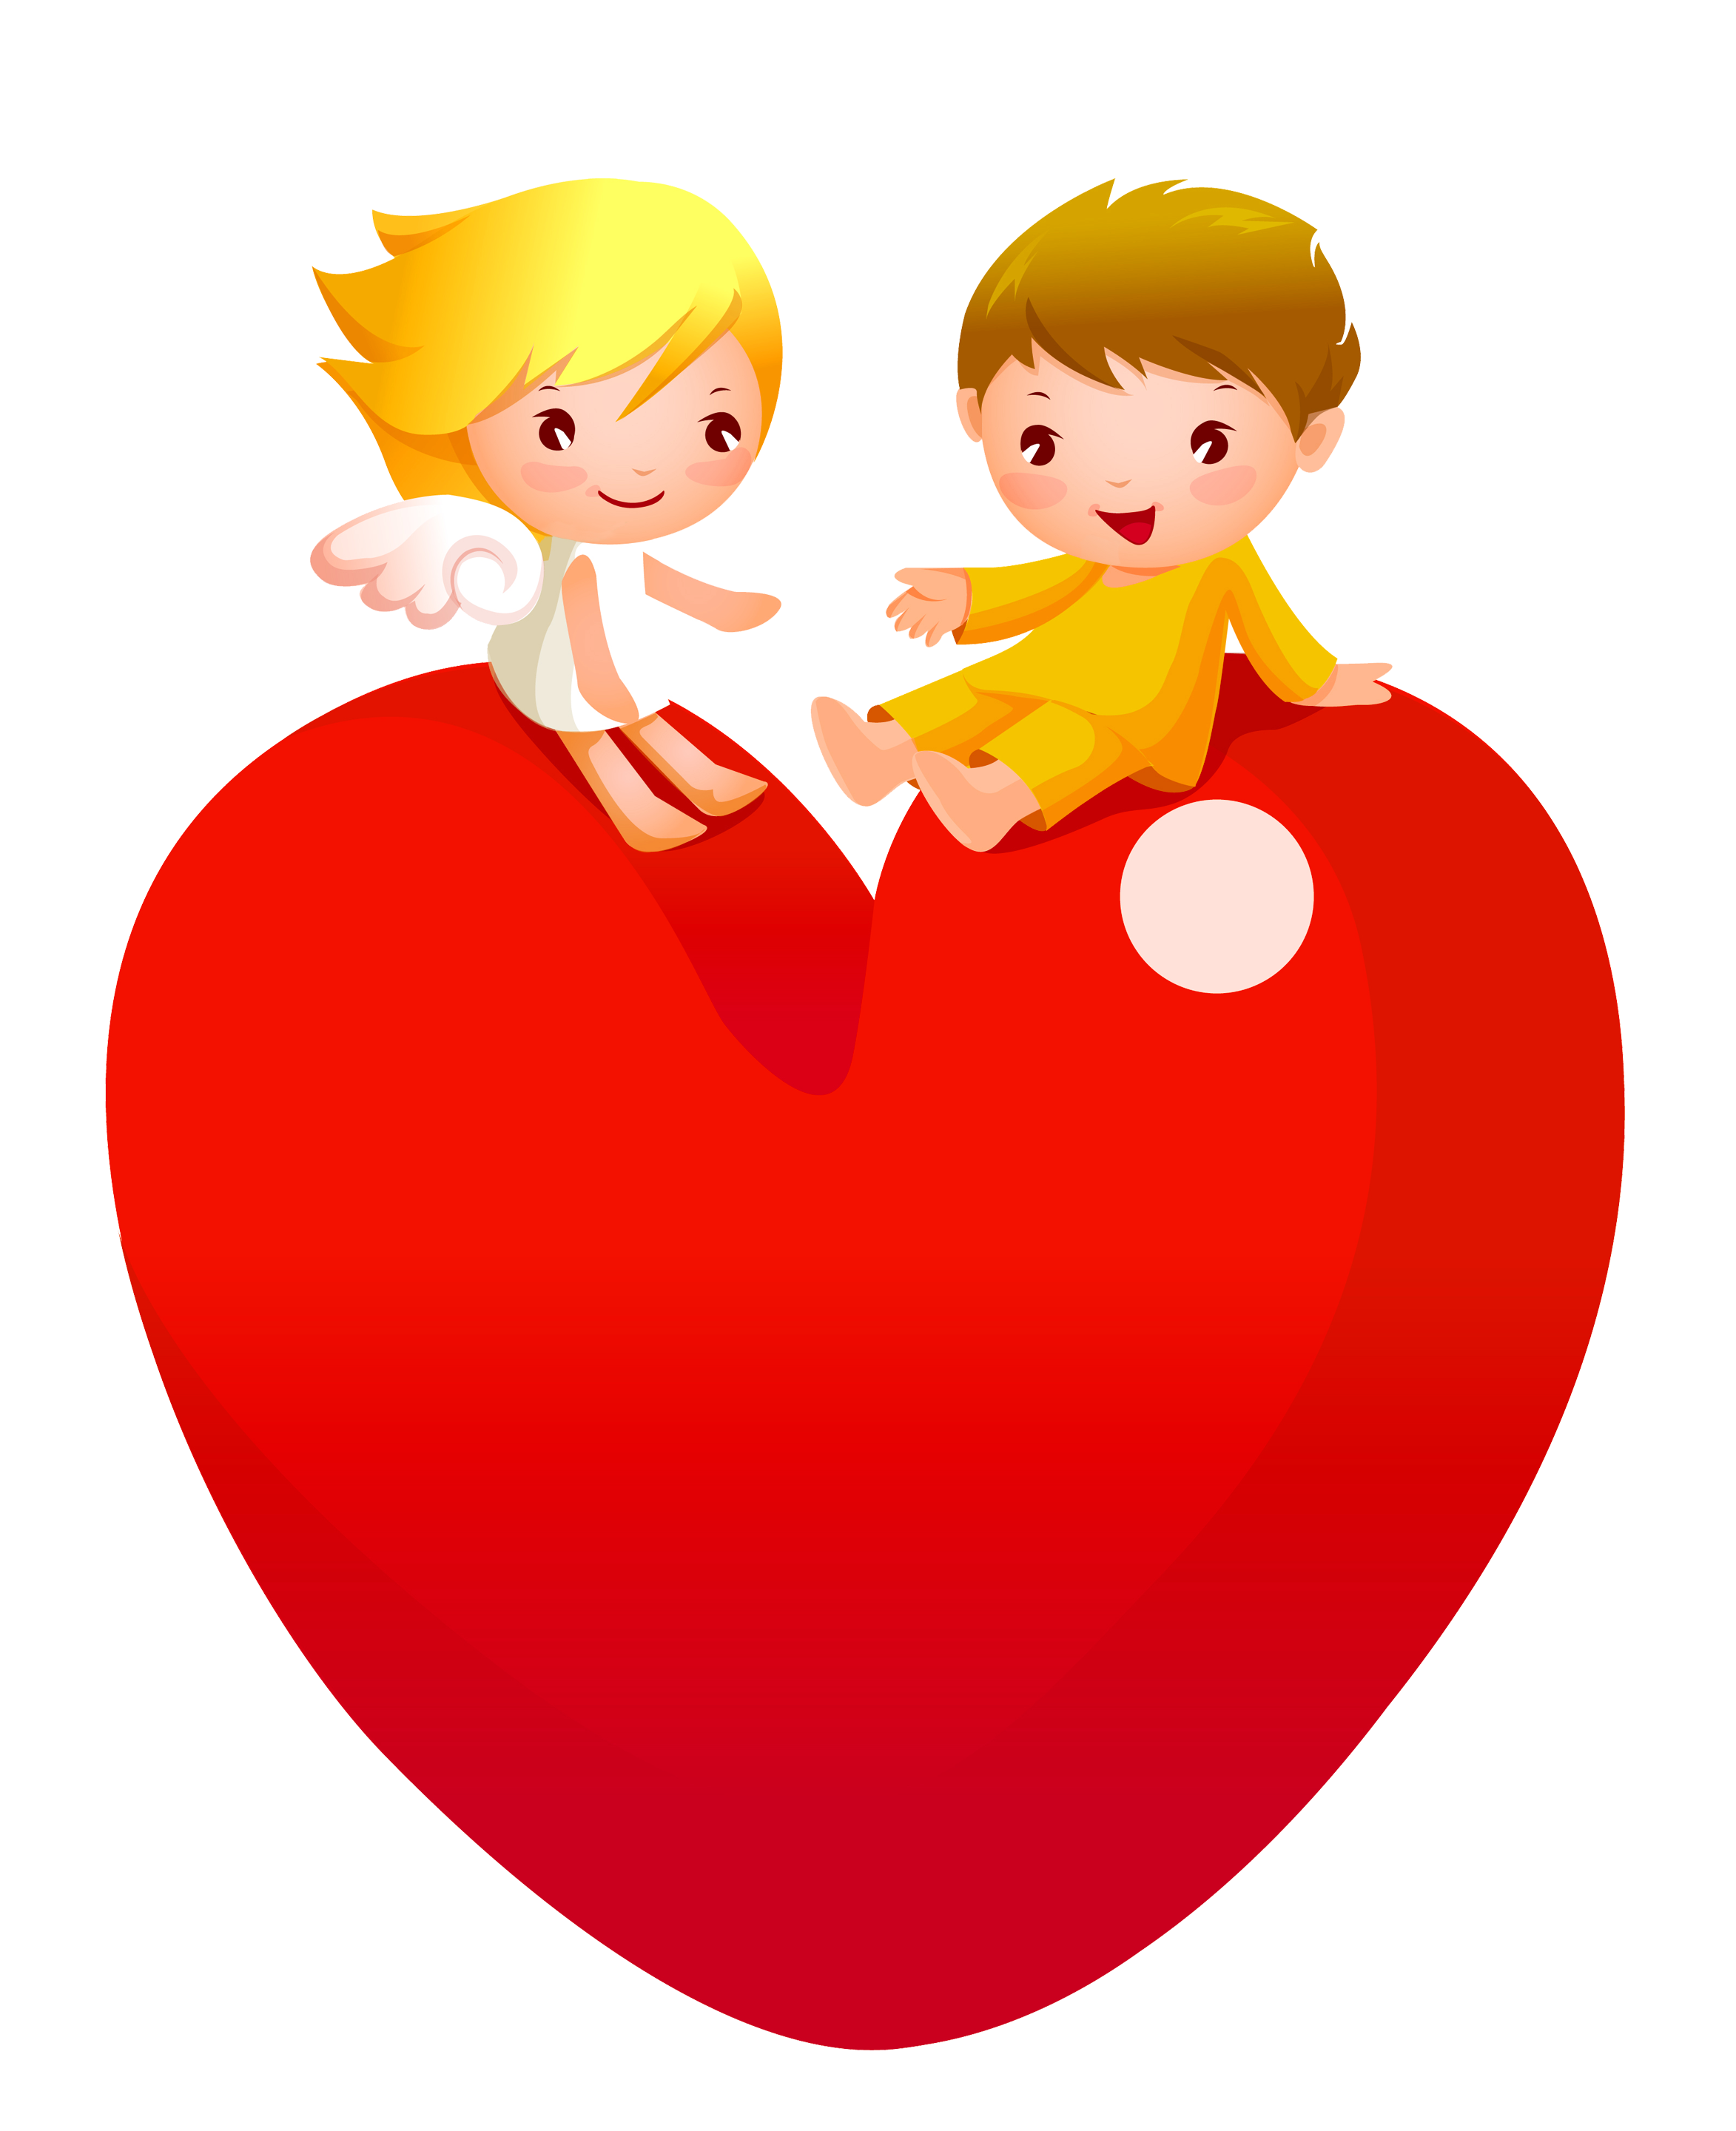 image black and white Angel clipart heart. Red with angels png.